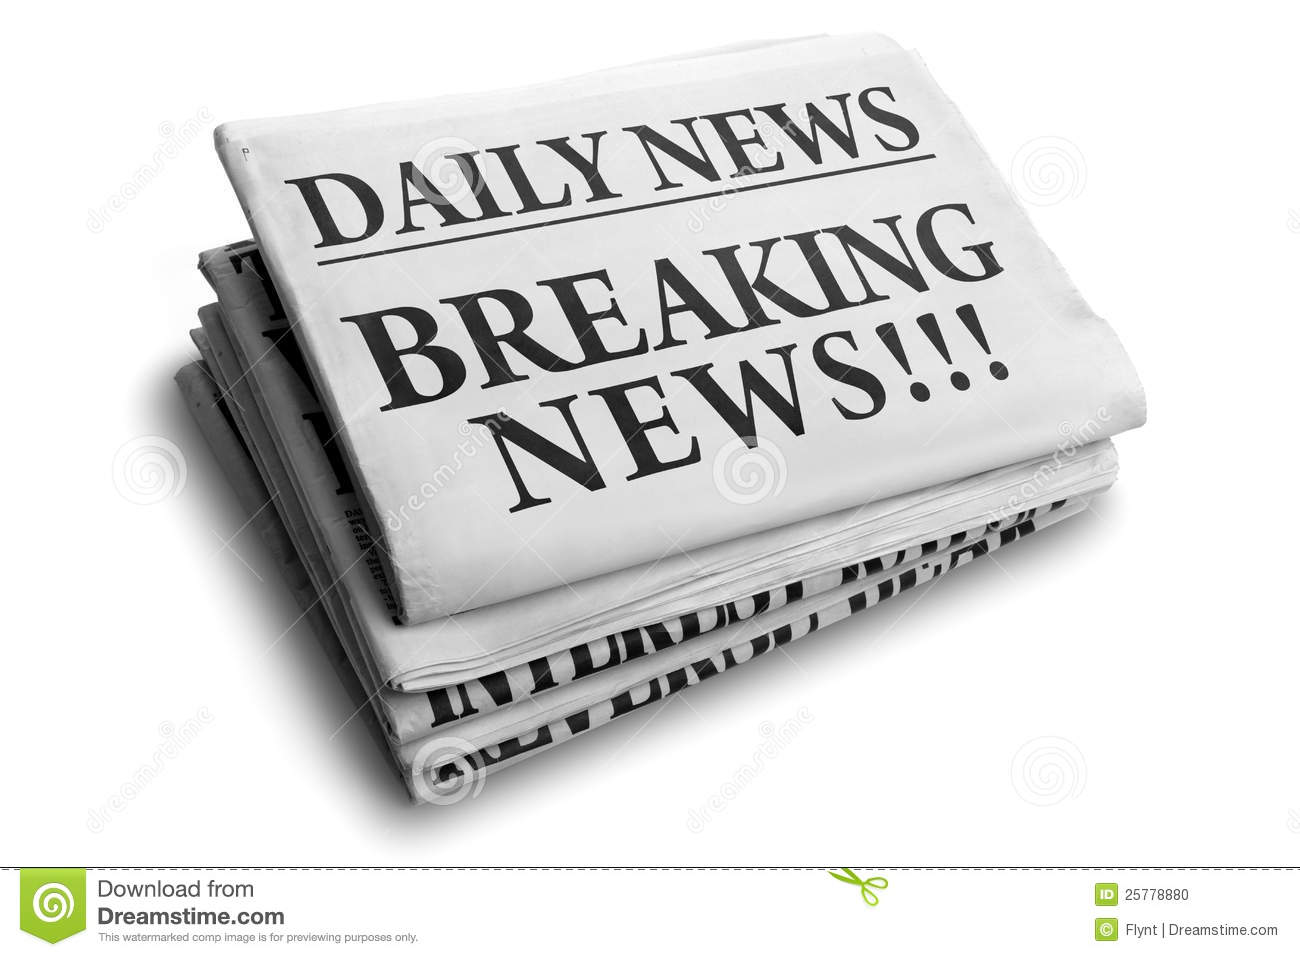 breaking news daily newspaper headline stock photo 25778880 - megapixl